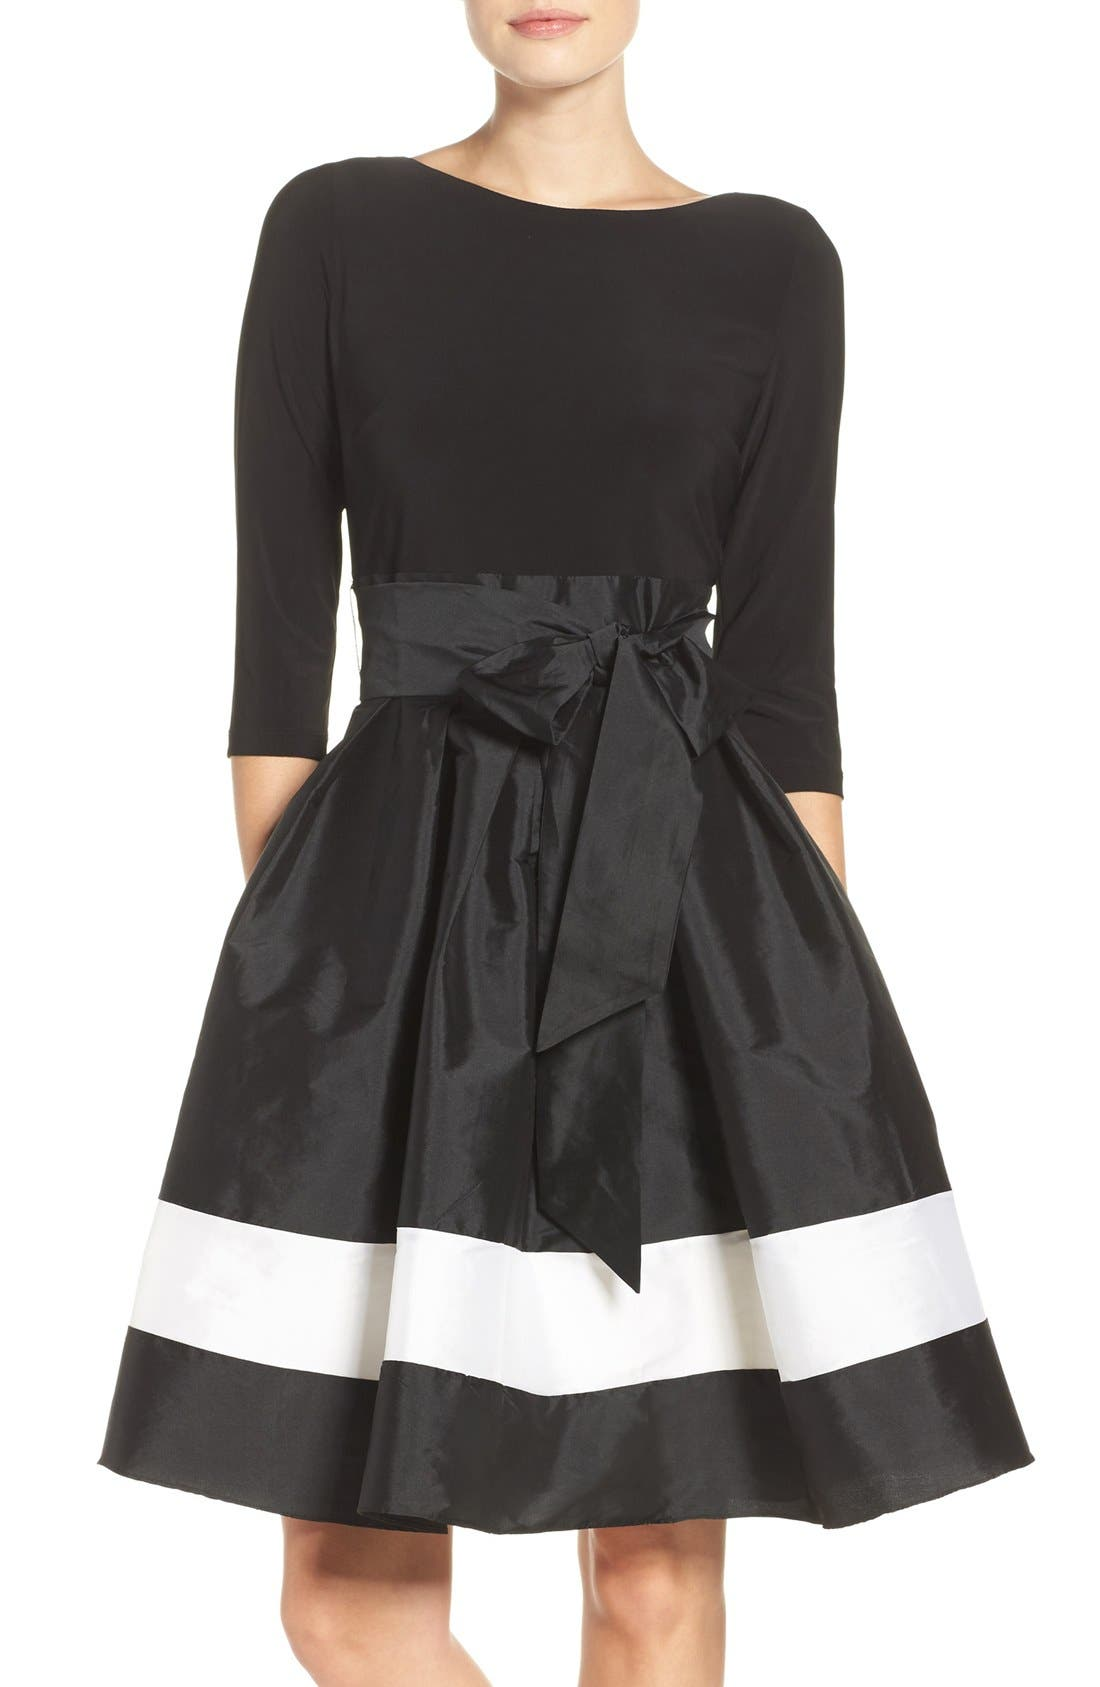 Alternate Image 1 Selected - Adrianna Papell Jersey & Colorblock Taffeta Fit & Flare Dress